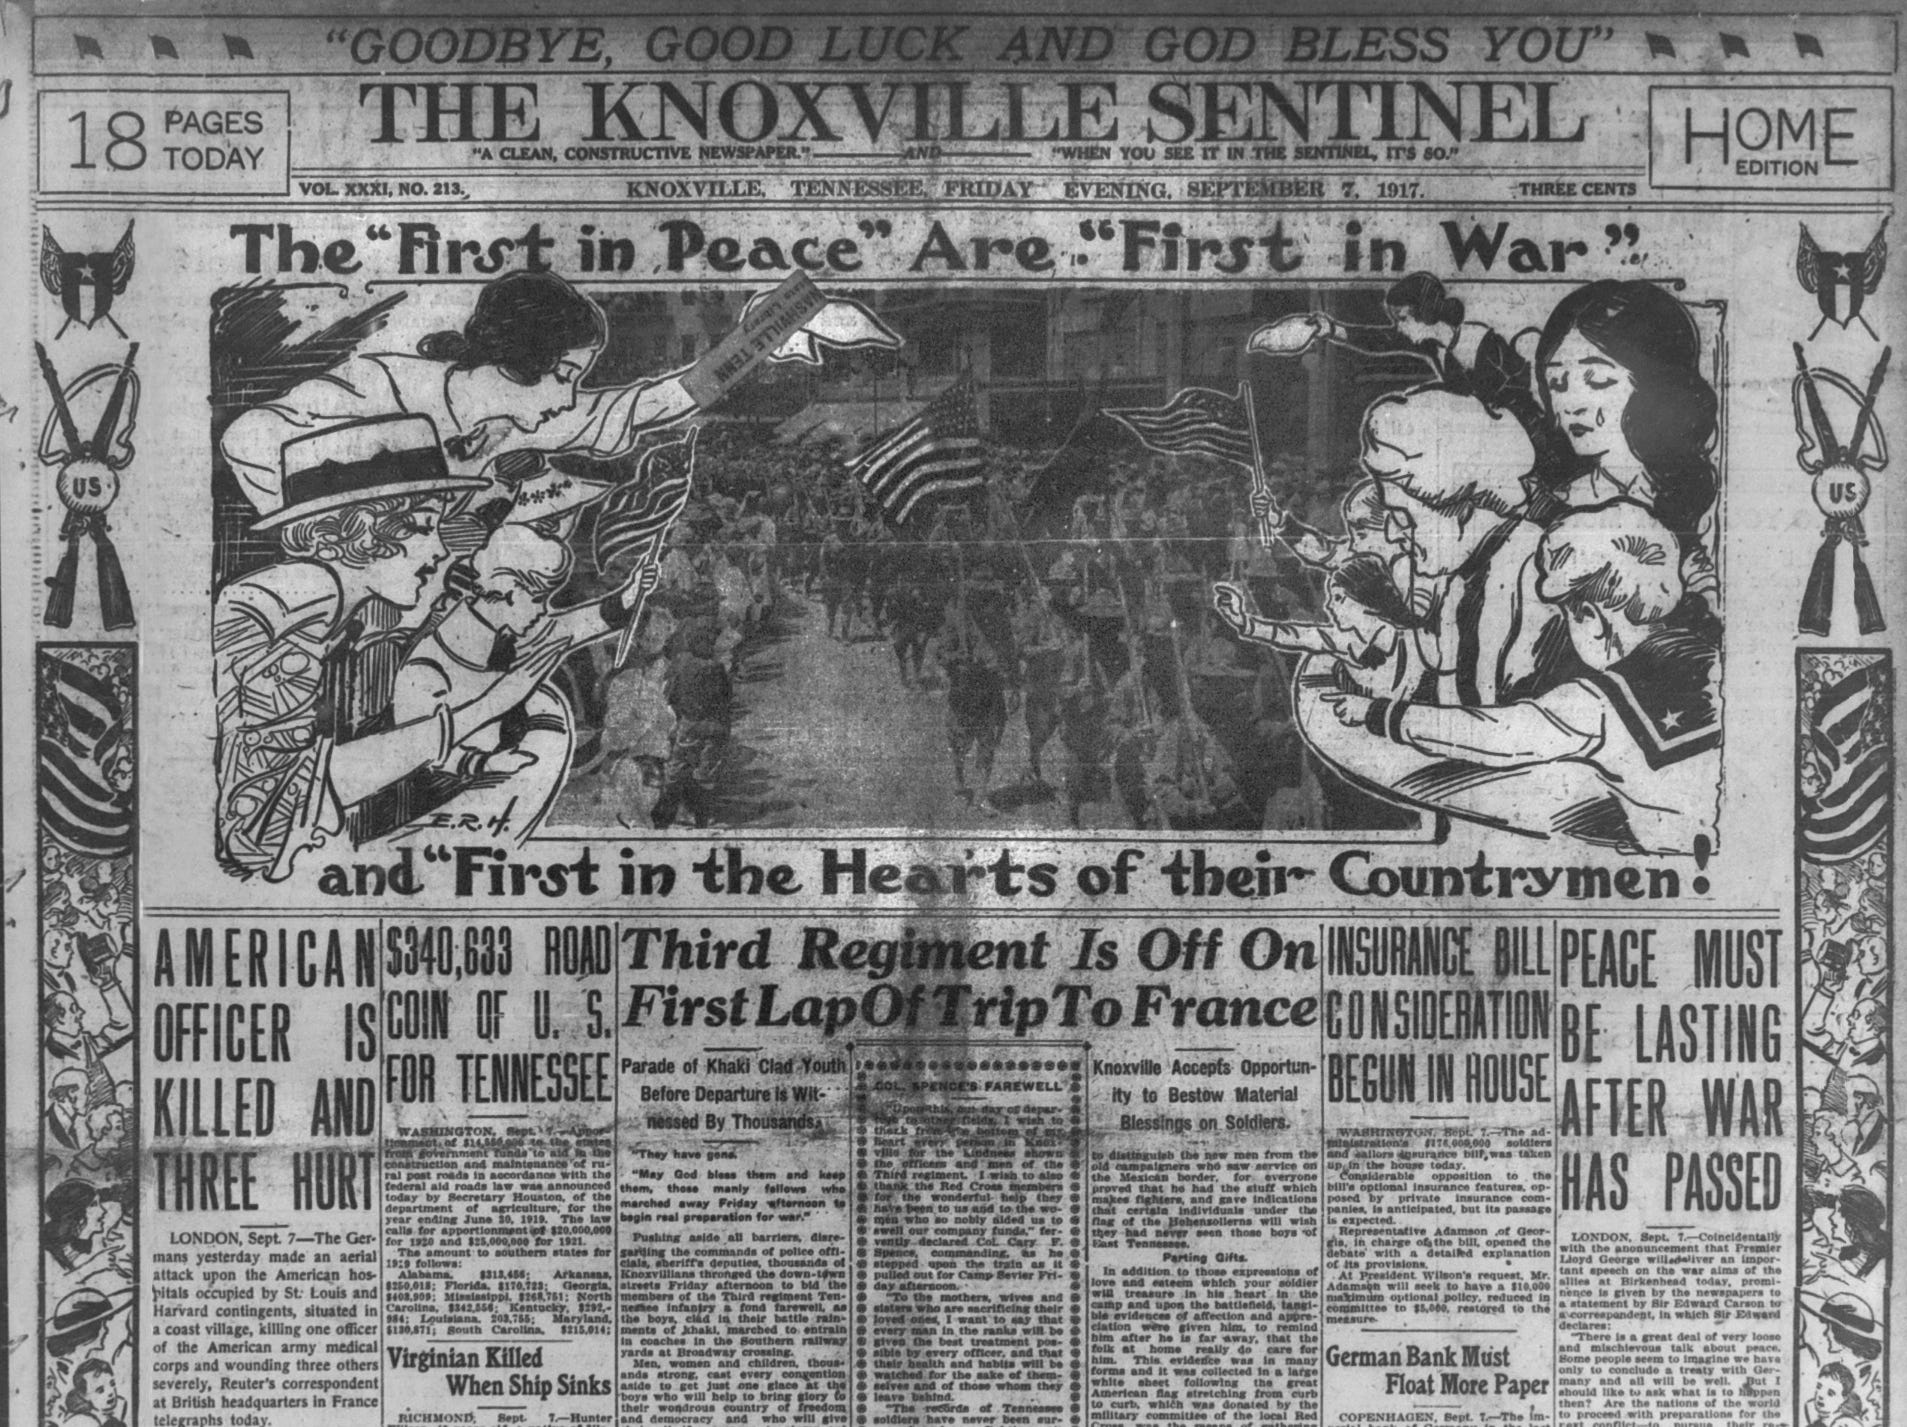 The Sept. 7, 1917 Knoxville Sentinel reports the departure of local soldiers for World War I. (KNS Archive)